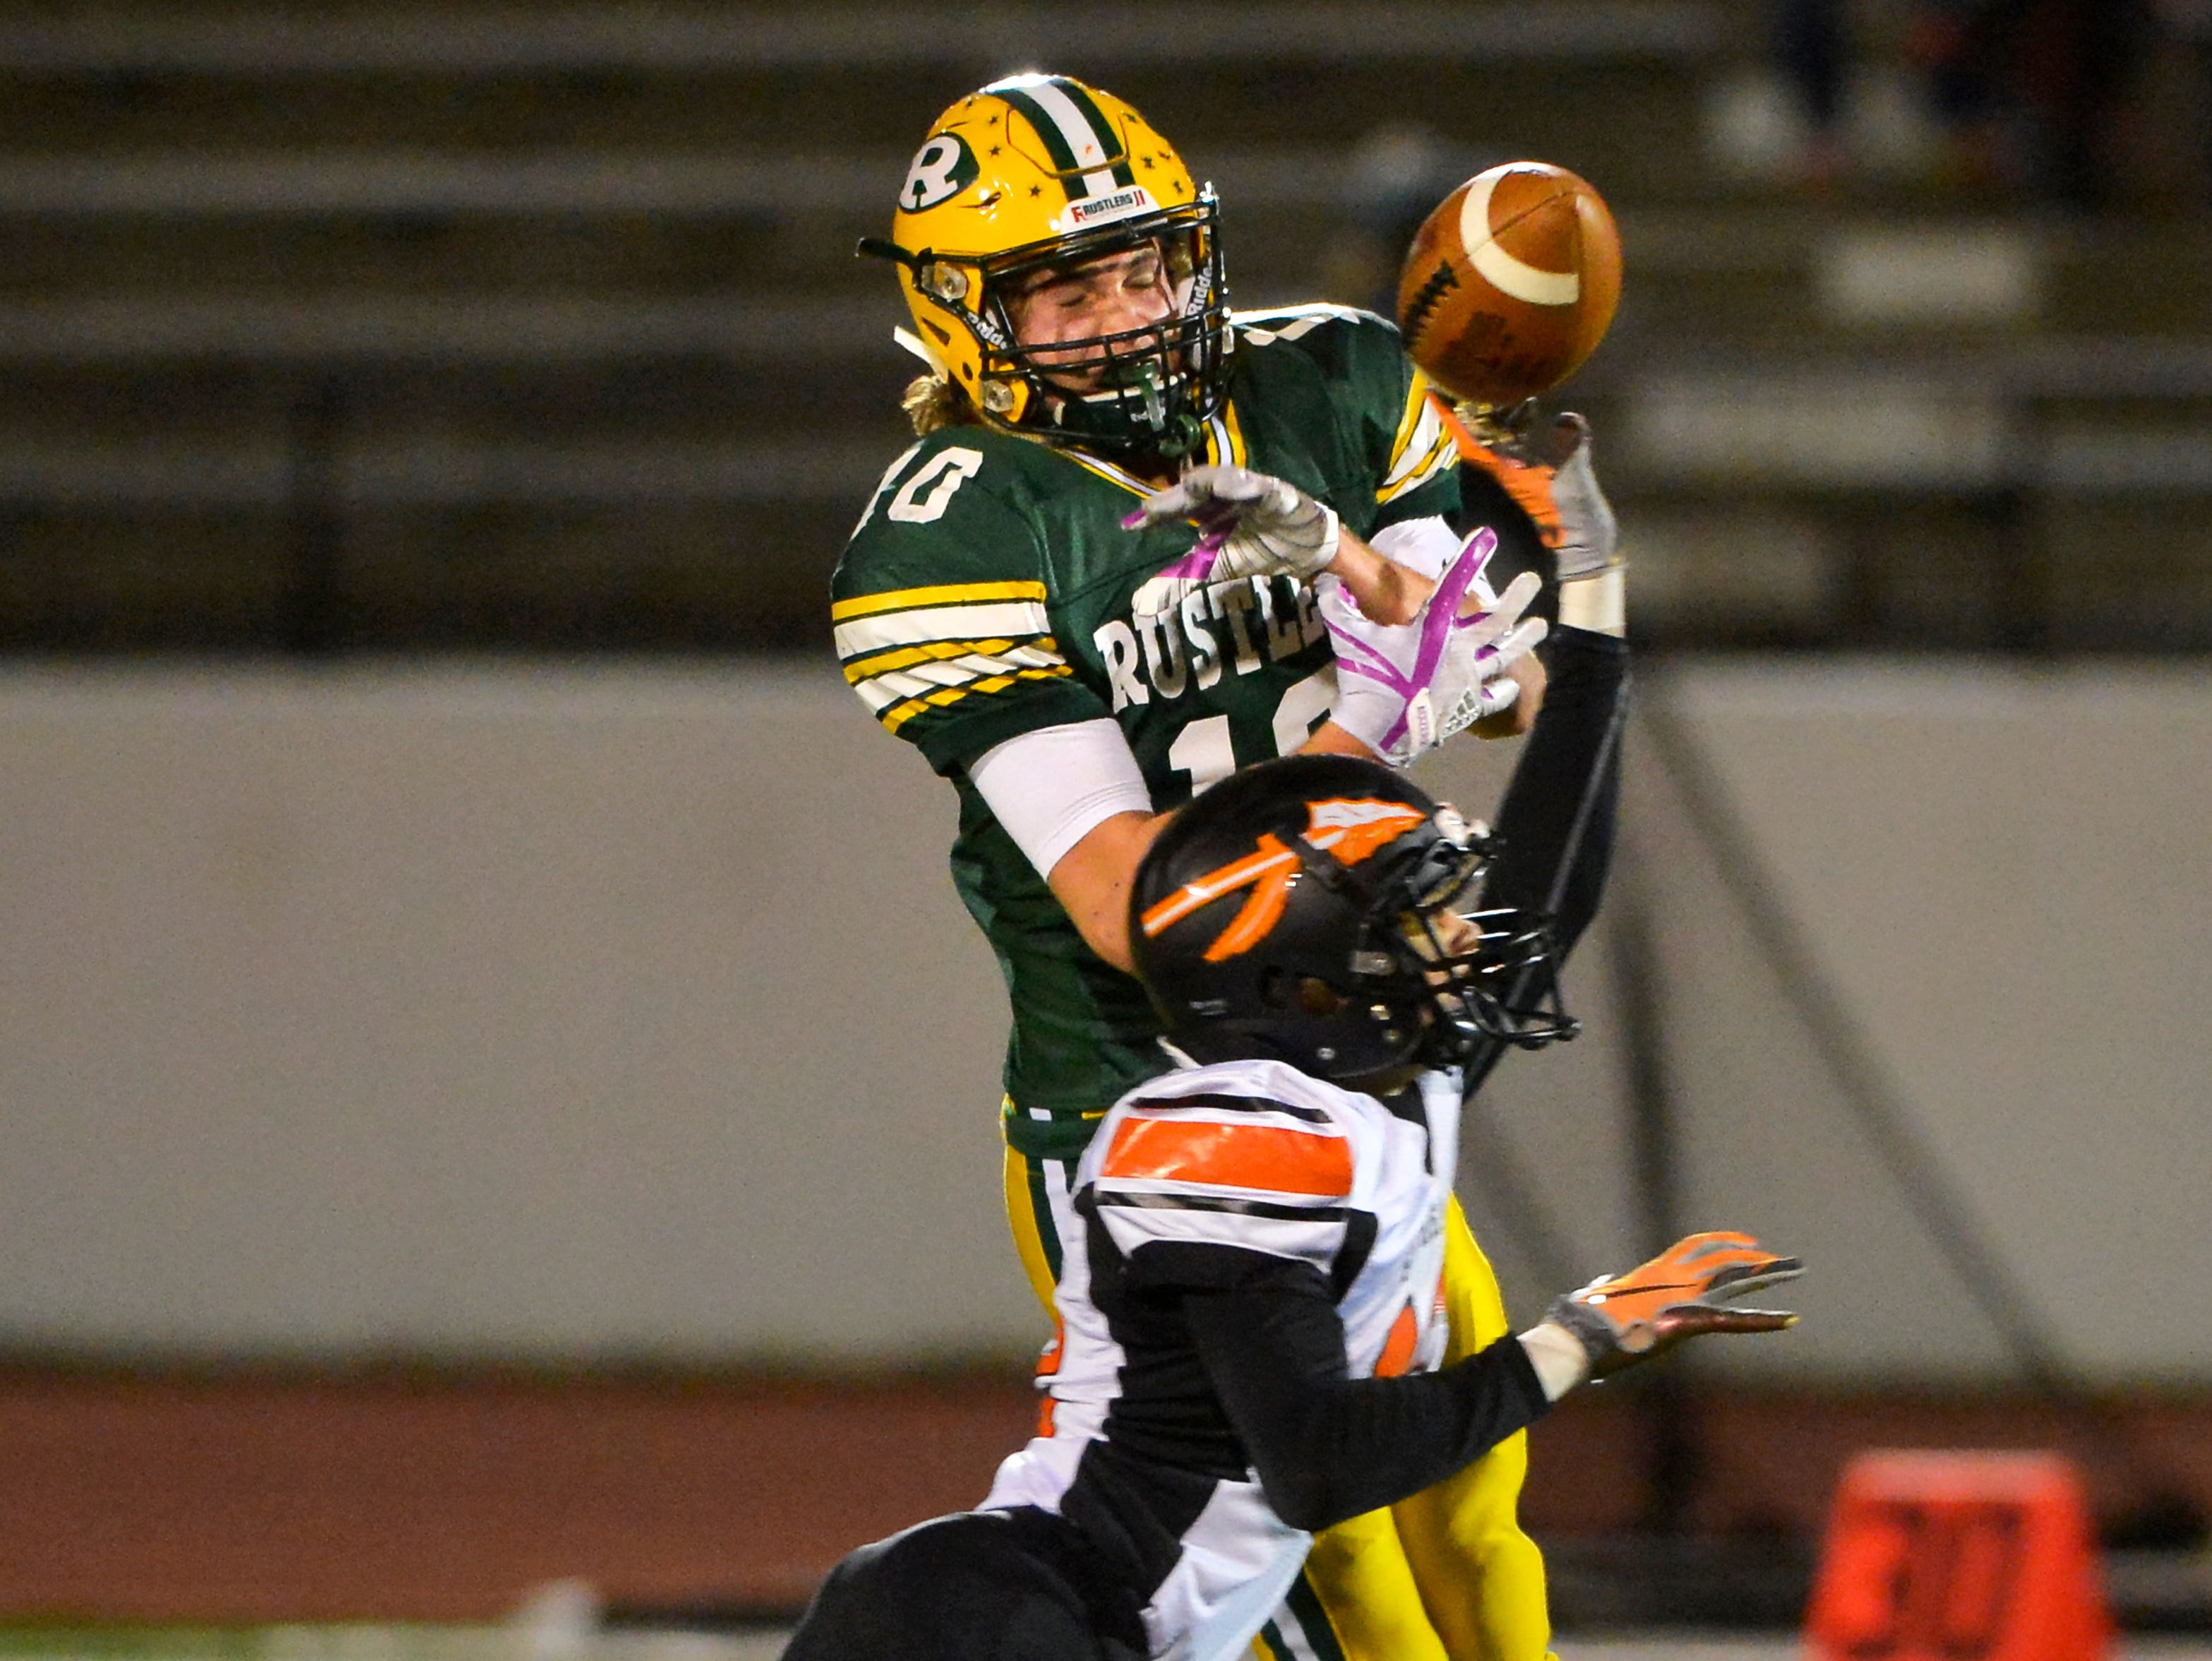 Flathead's Brian Wells breaks up a pass intended for CMR's Tucker Greenwell during Friday night's football game at Memorial Stadium.